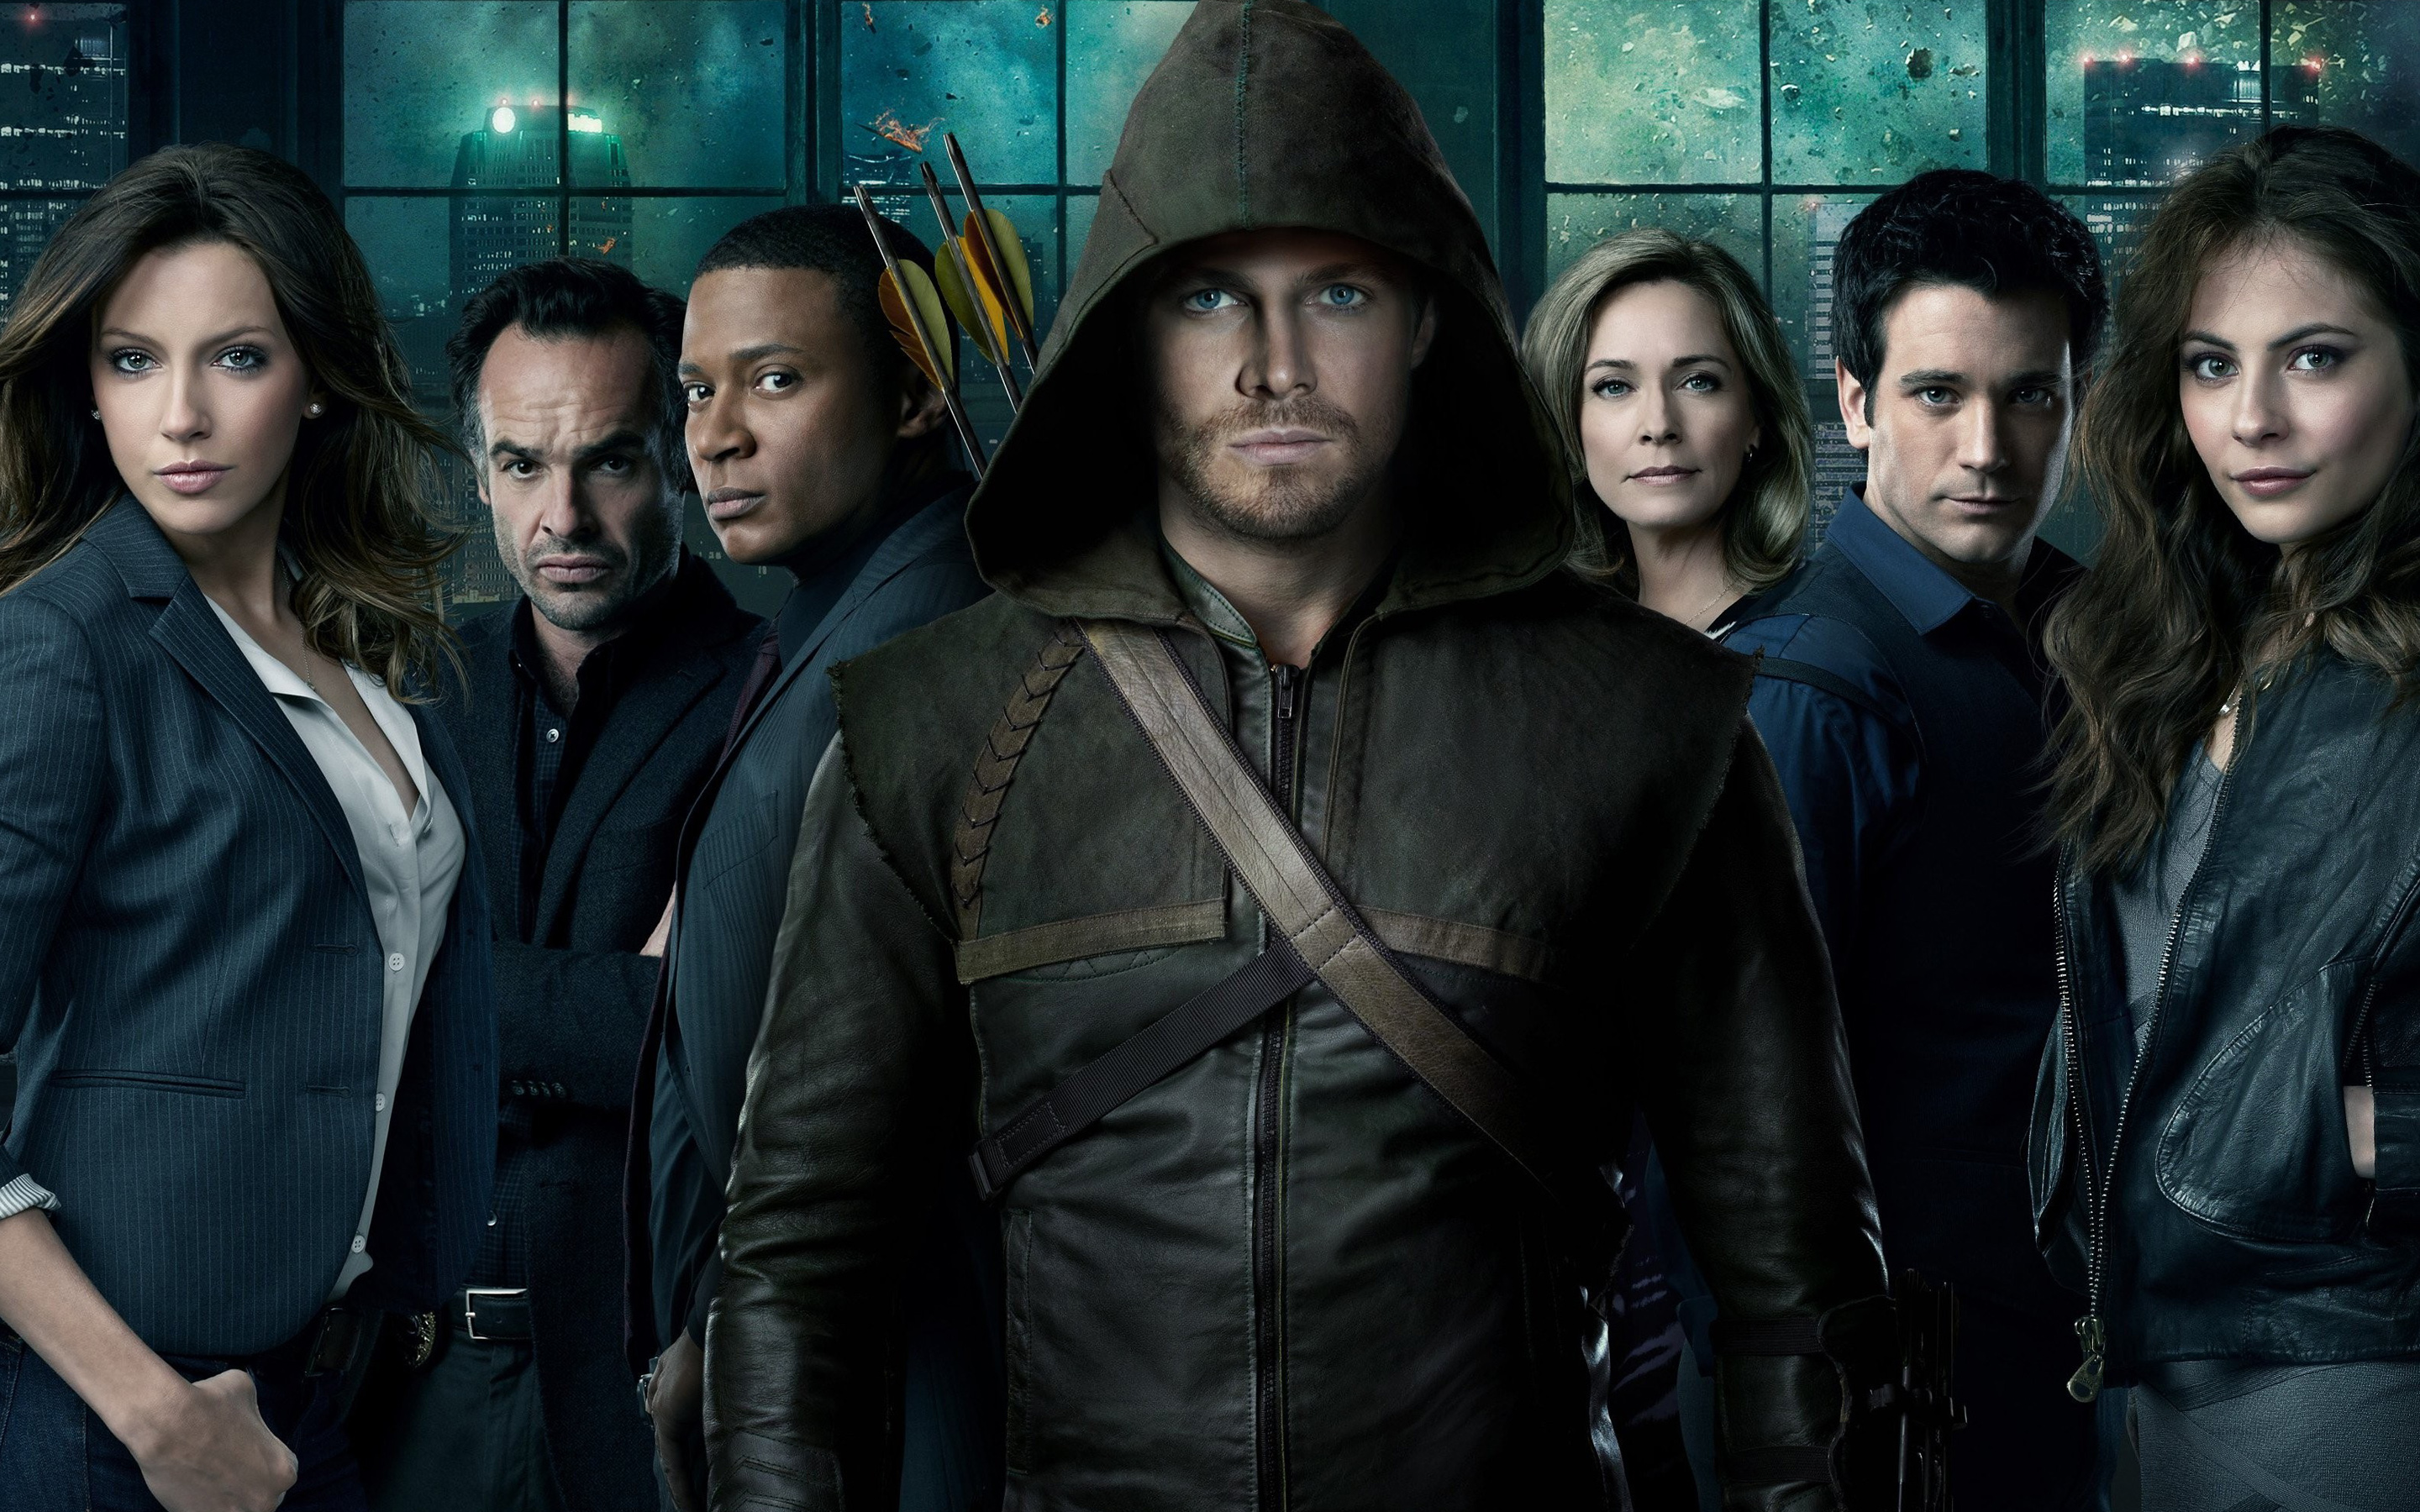 Arrow TV Series 2916.22 Kb